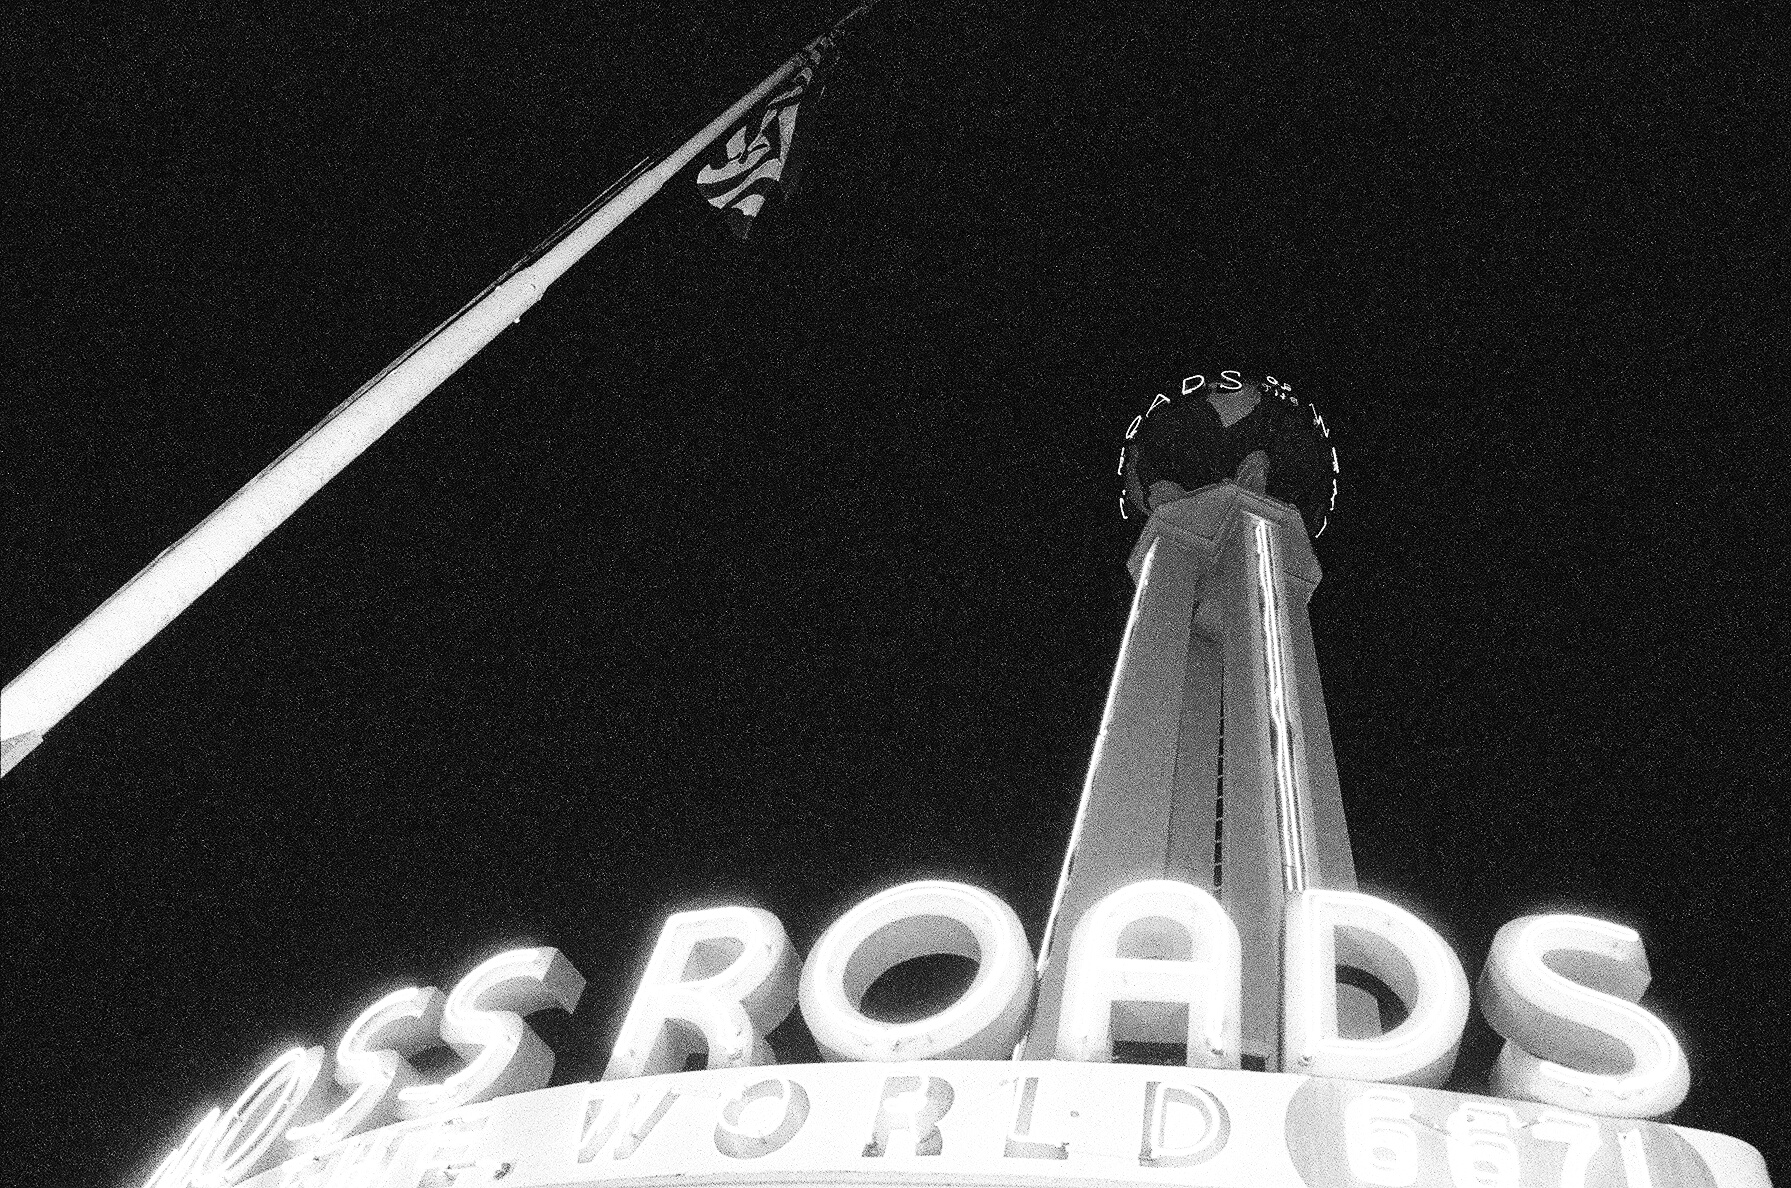 Cross Roads Of The World, Hollywood